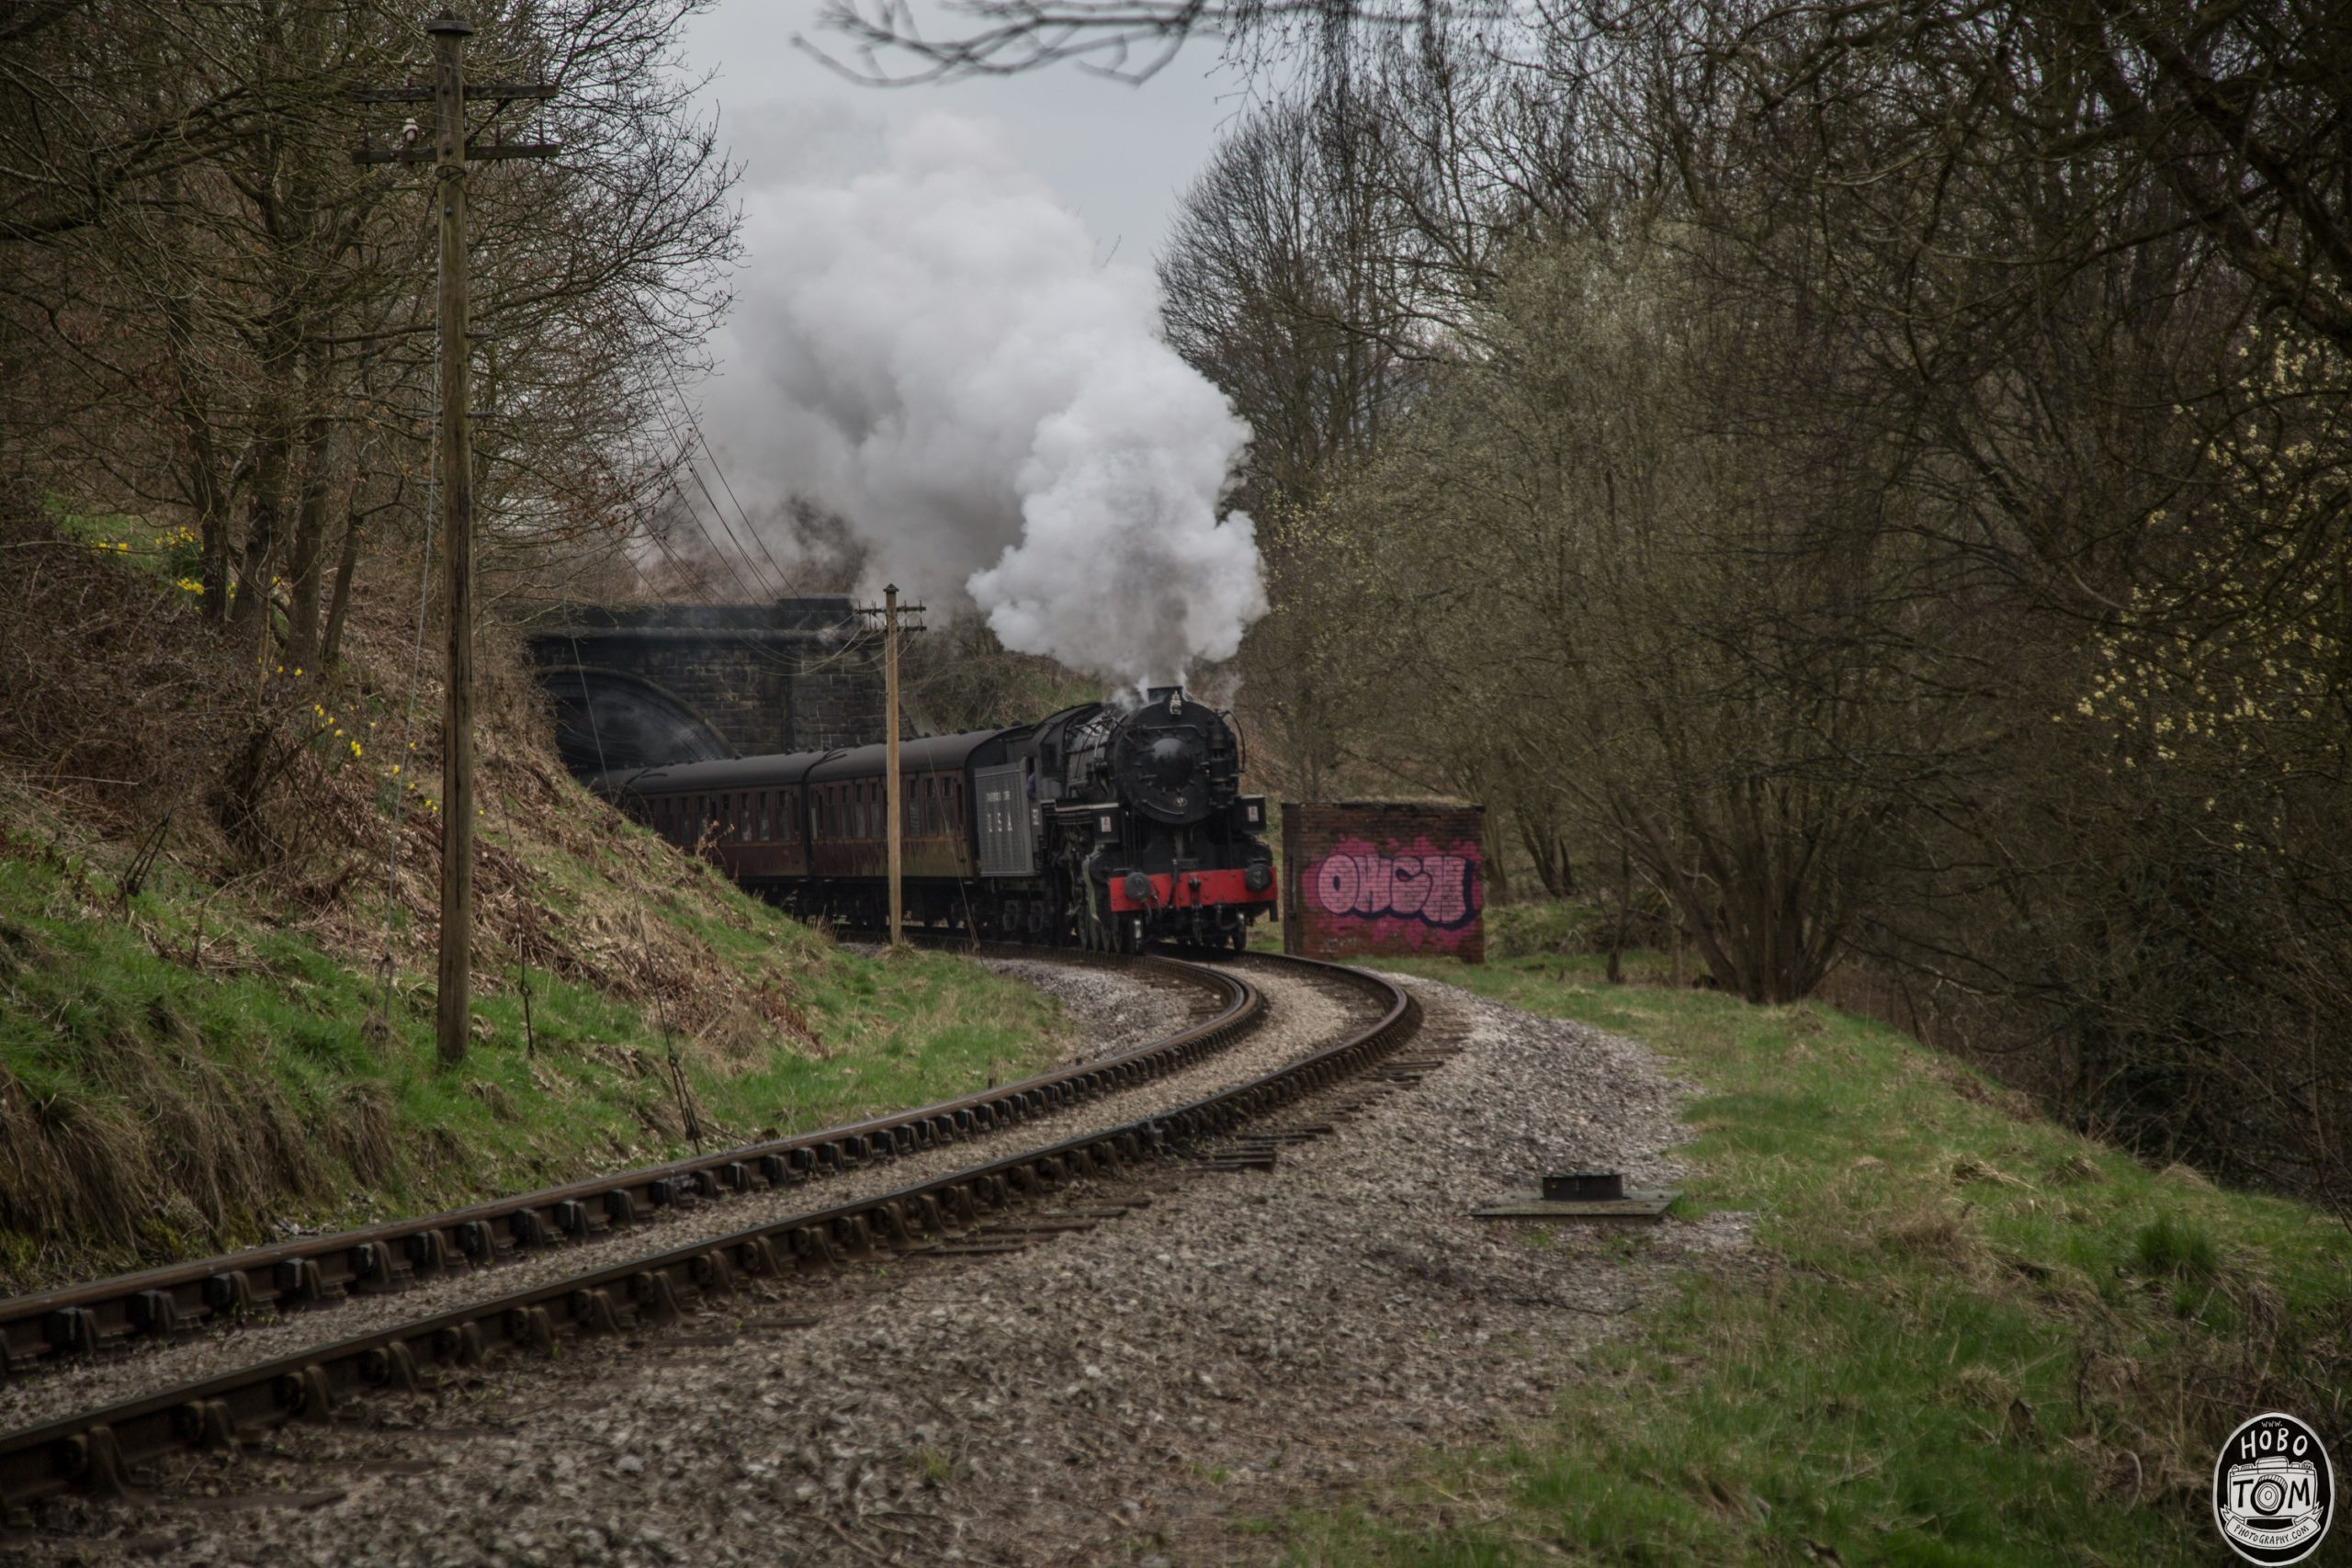 Big Jim, Leaving Oakwroth Tunnel on Keighley Worth Valley Railway